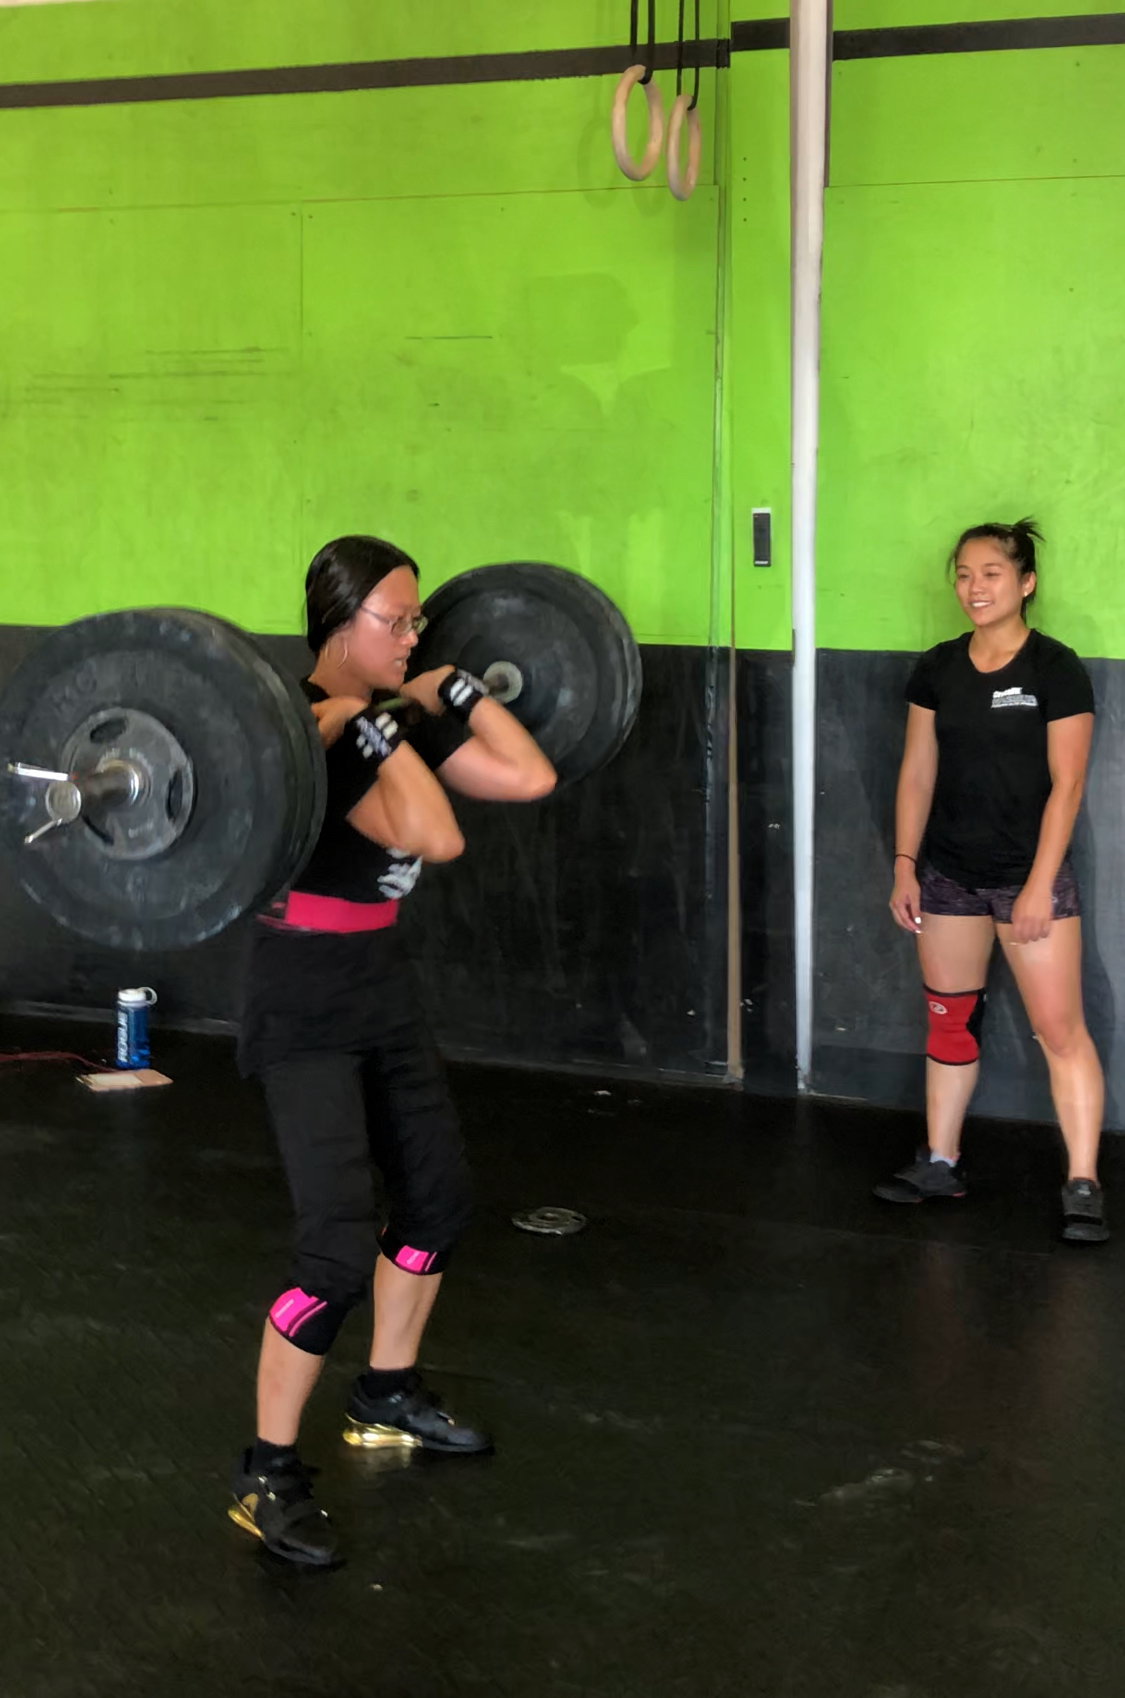 Monday was filled with PRs.   Here Yen smashes her goal of 150#.   Her sister Phuong, smiles and cheers her on after hitting at PR at 140#.   Nice work everyone!